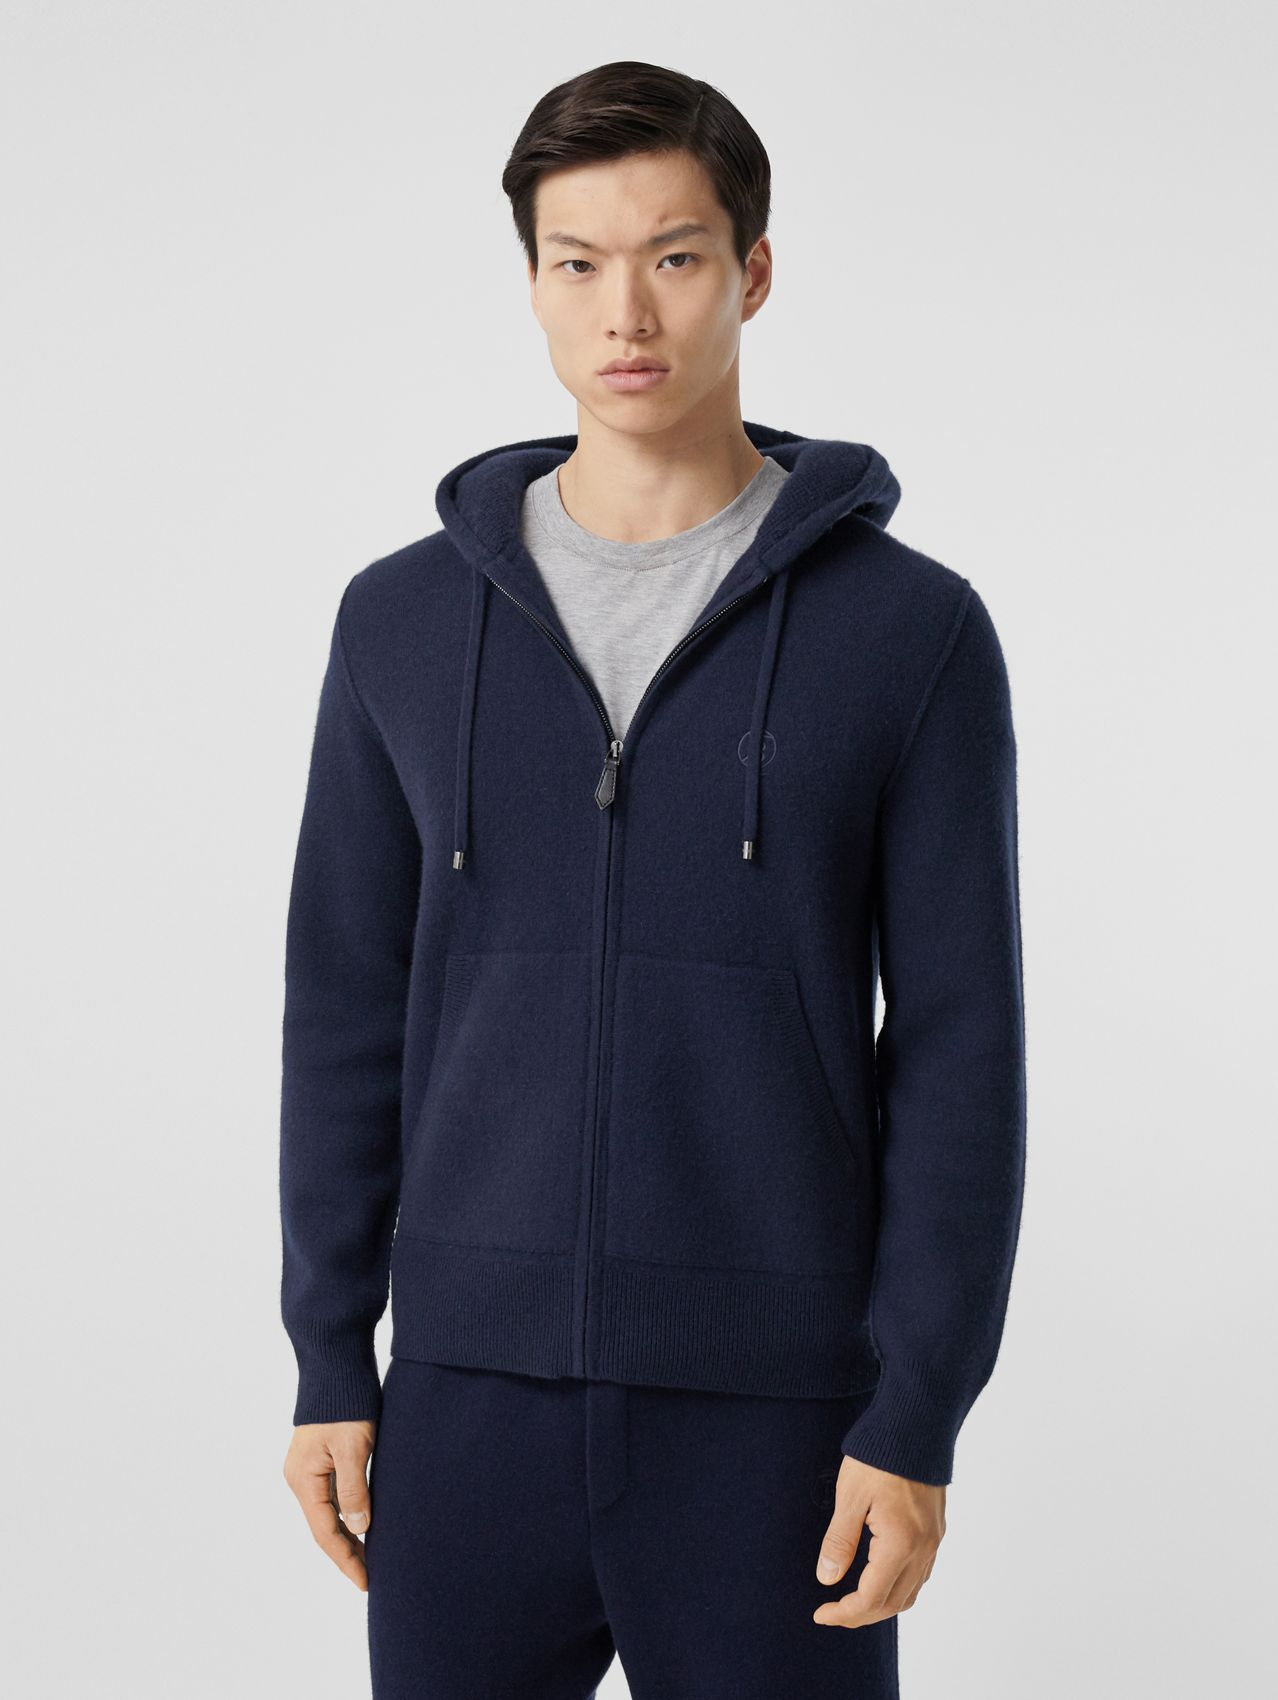 Monogram Motif Cashmere Blend Hooded Top in Navy